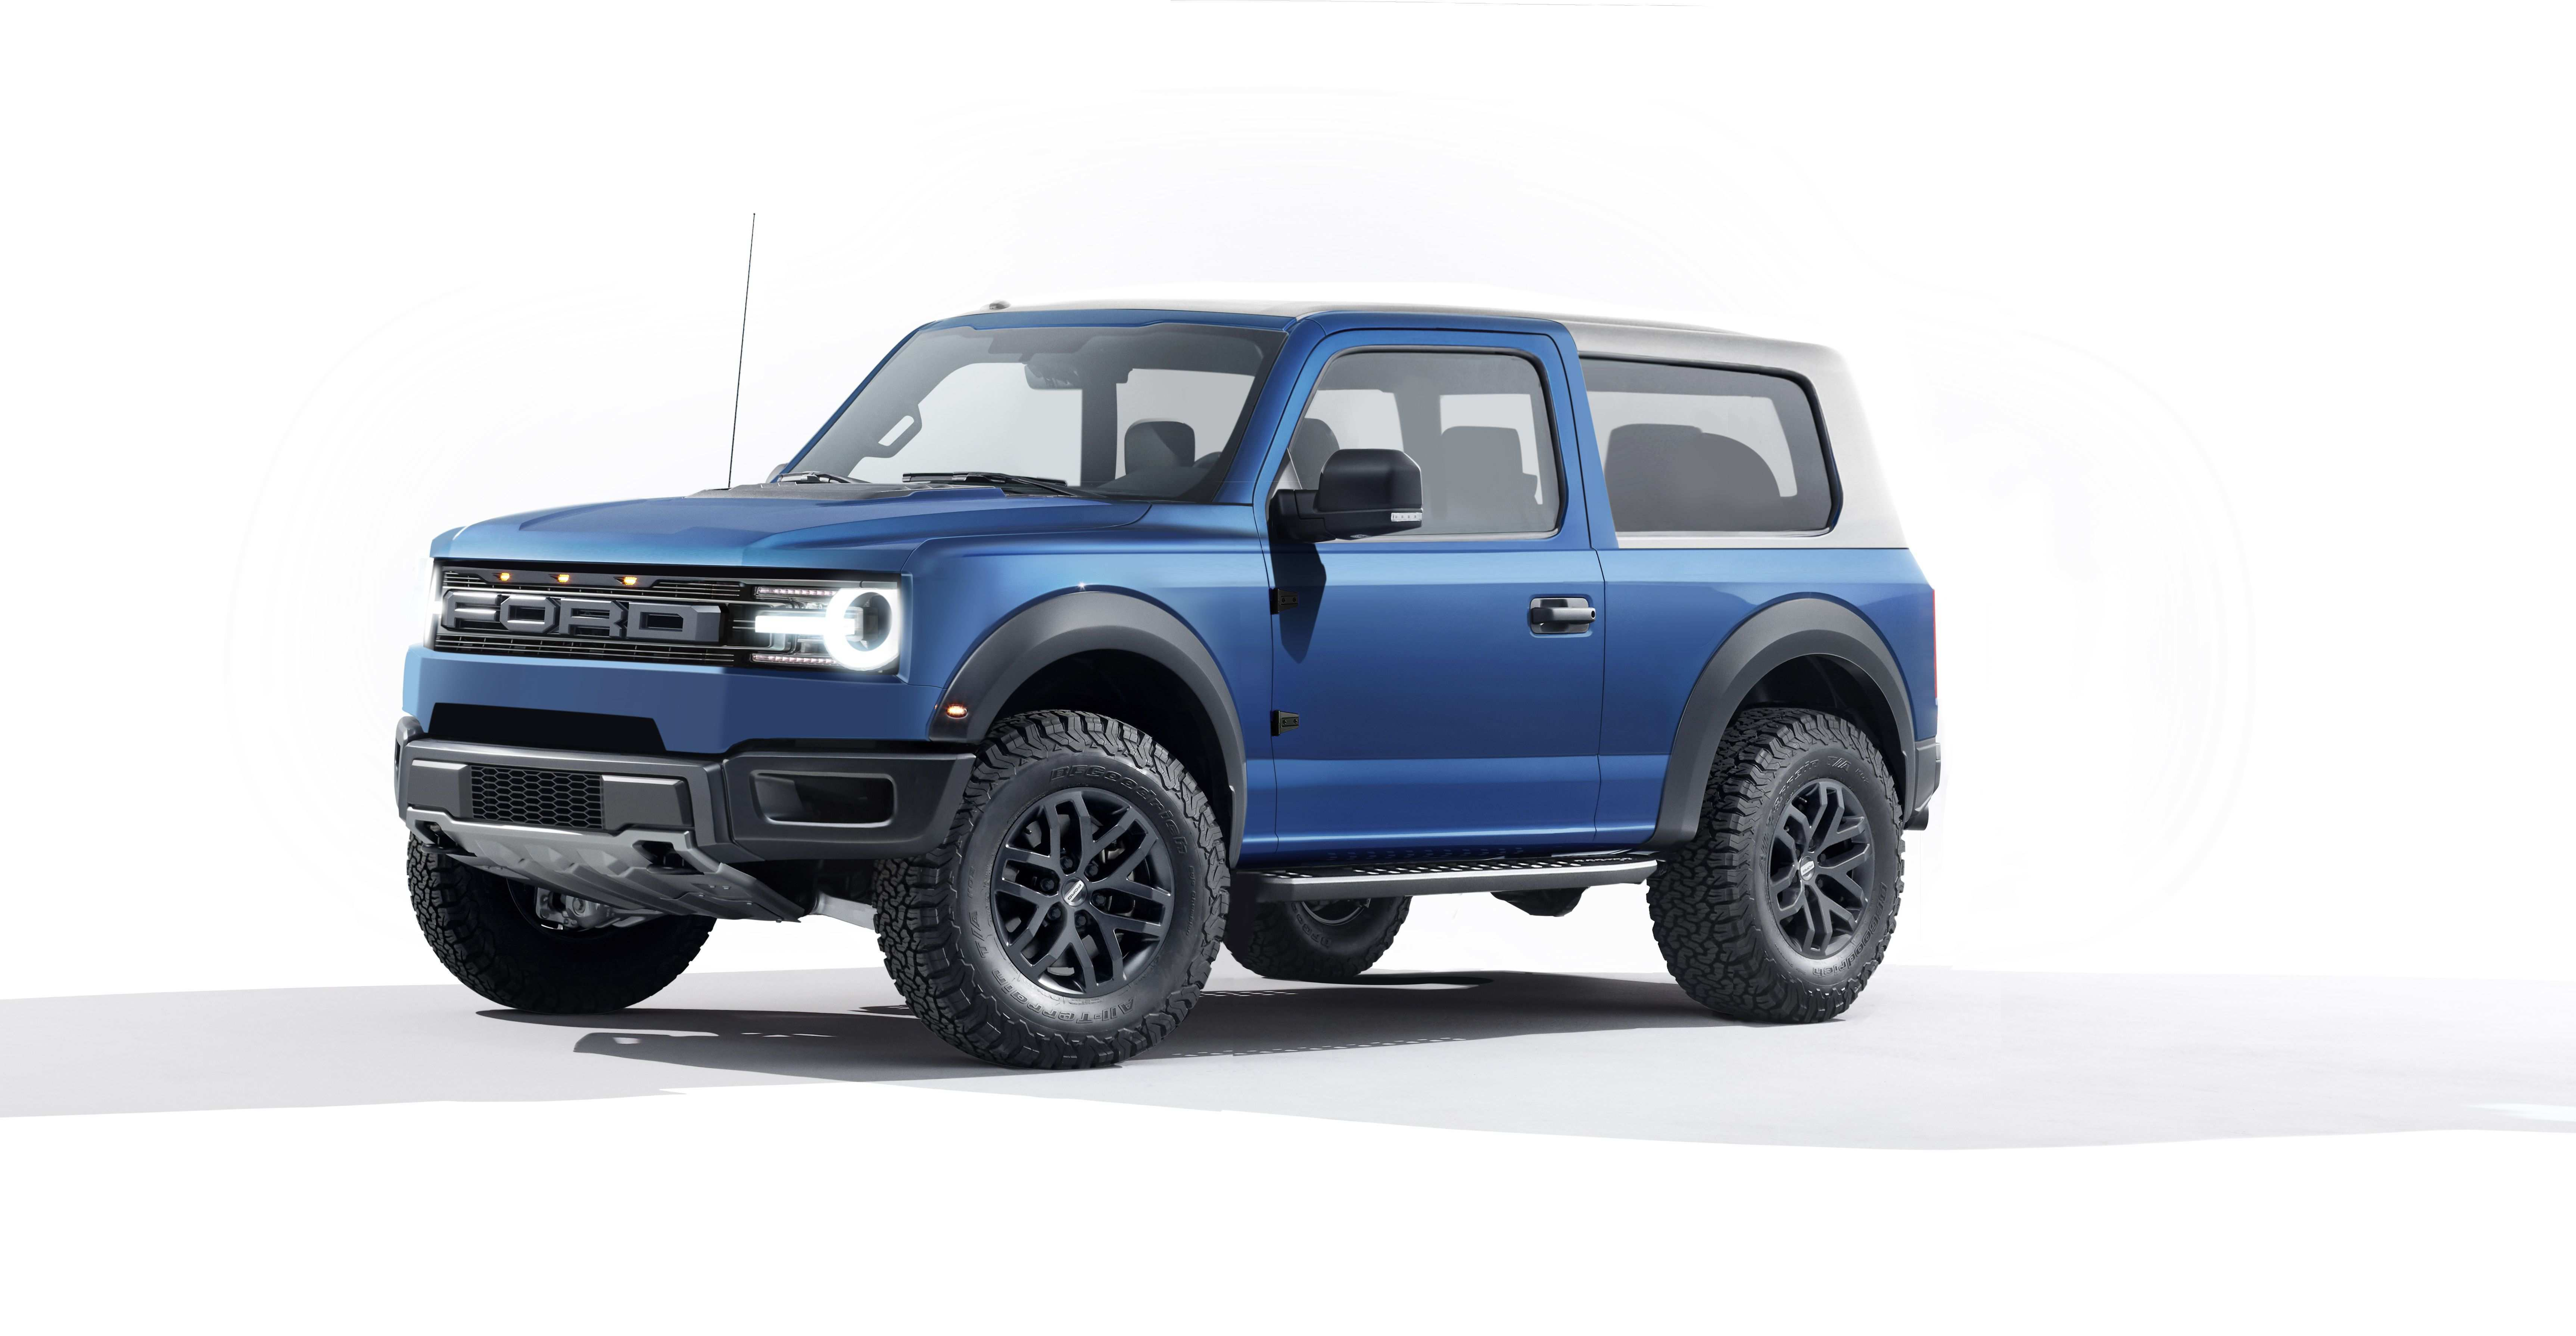 67 The Best 2020 Ford Bronco Msrp Ratings